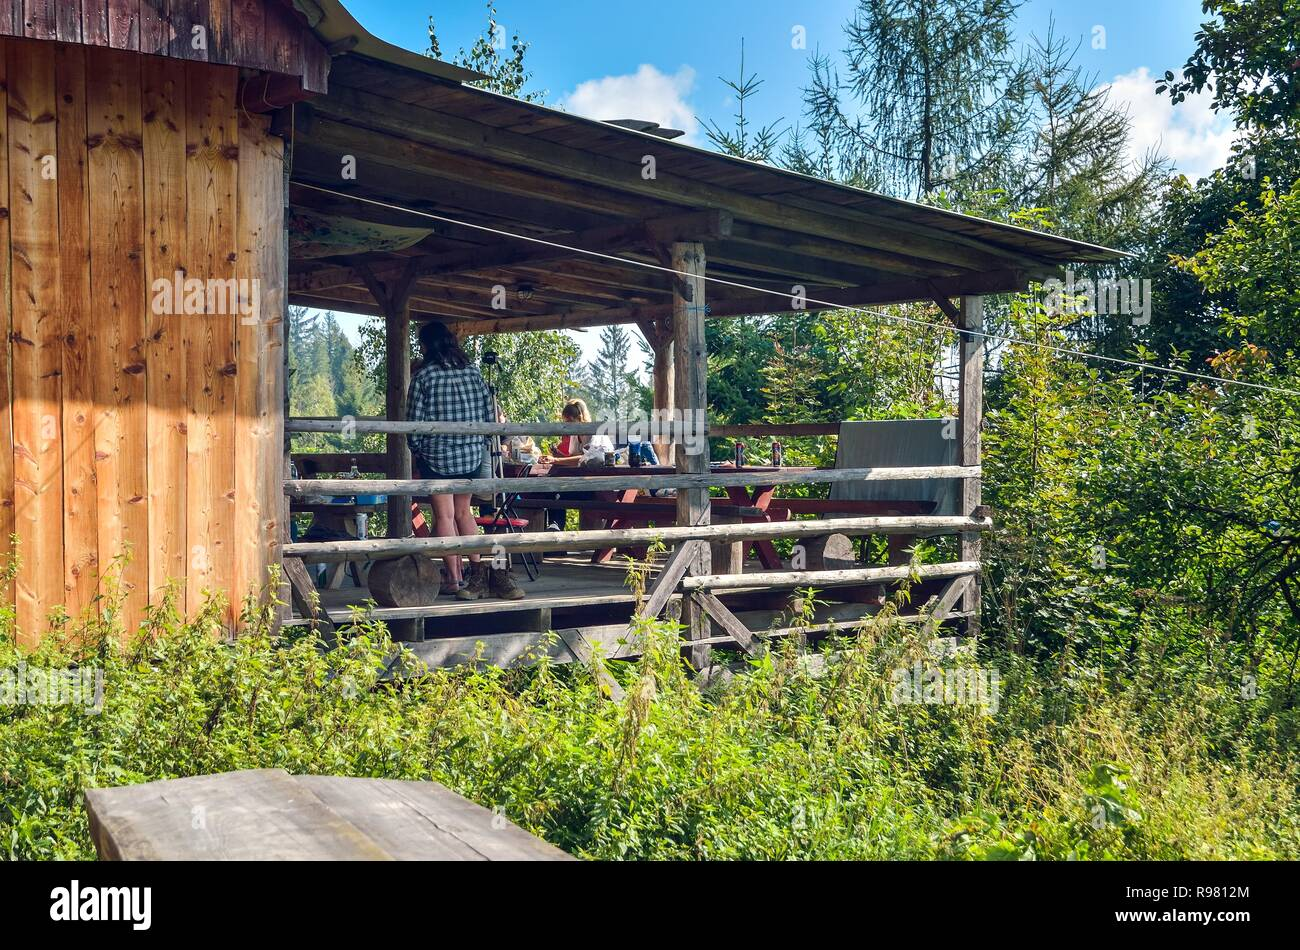 BESKIDS, POLAND - SEPTEMBER 9, 2018: Tourists on the porch in front of a mountain hostel in the Beskids in Poland. - Stock Image